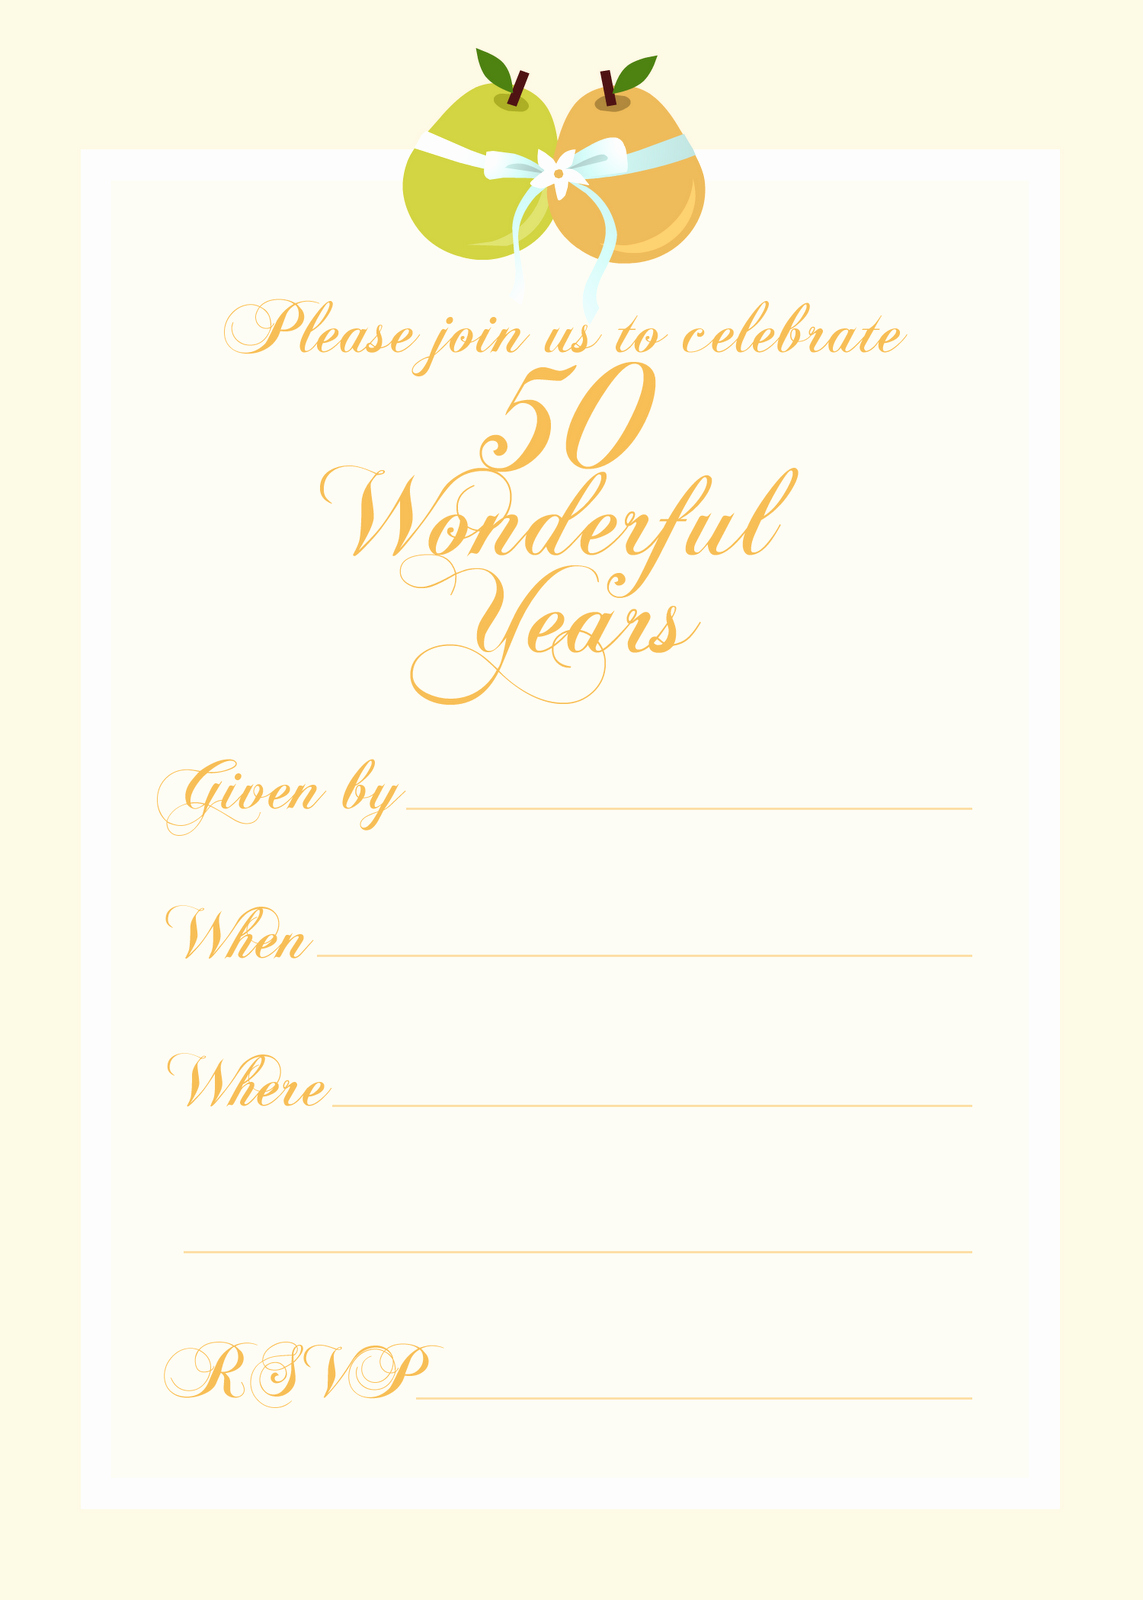 Wedding Anniversary Invitation Templates Unique Free Printable Party Invitations Free 50th Wedding